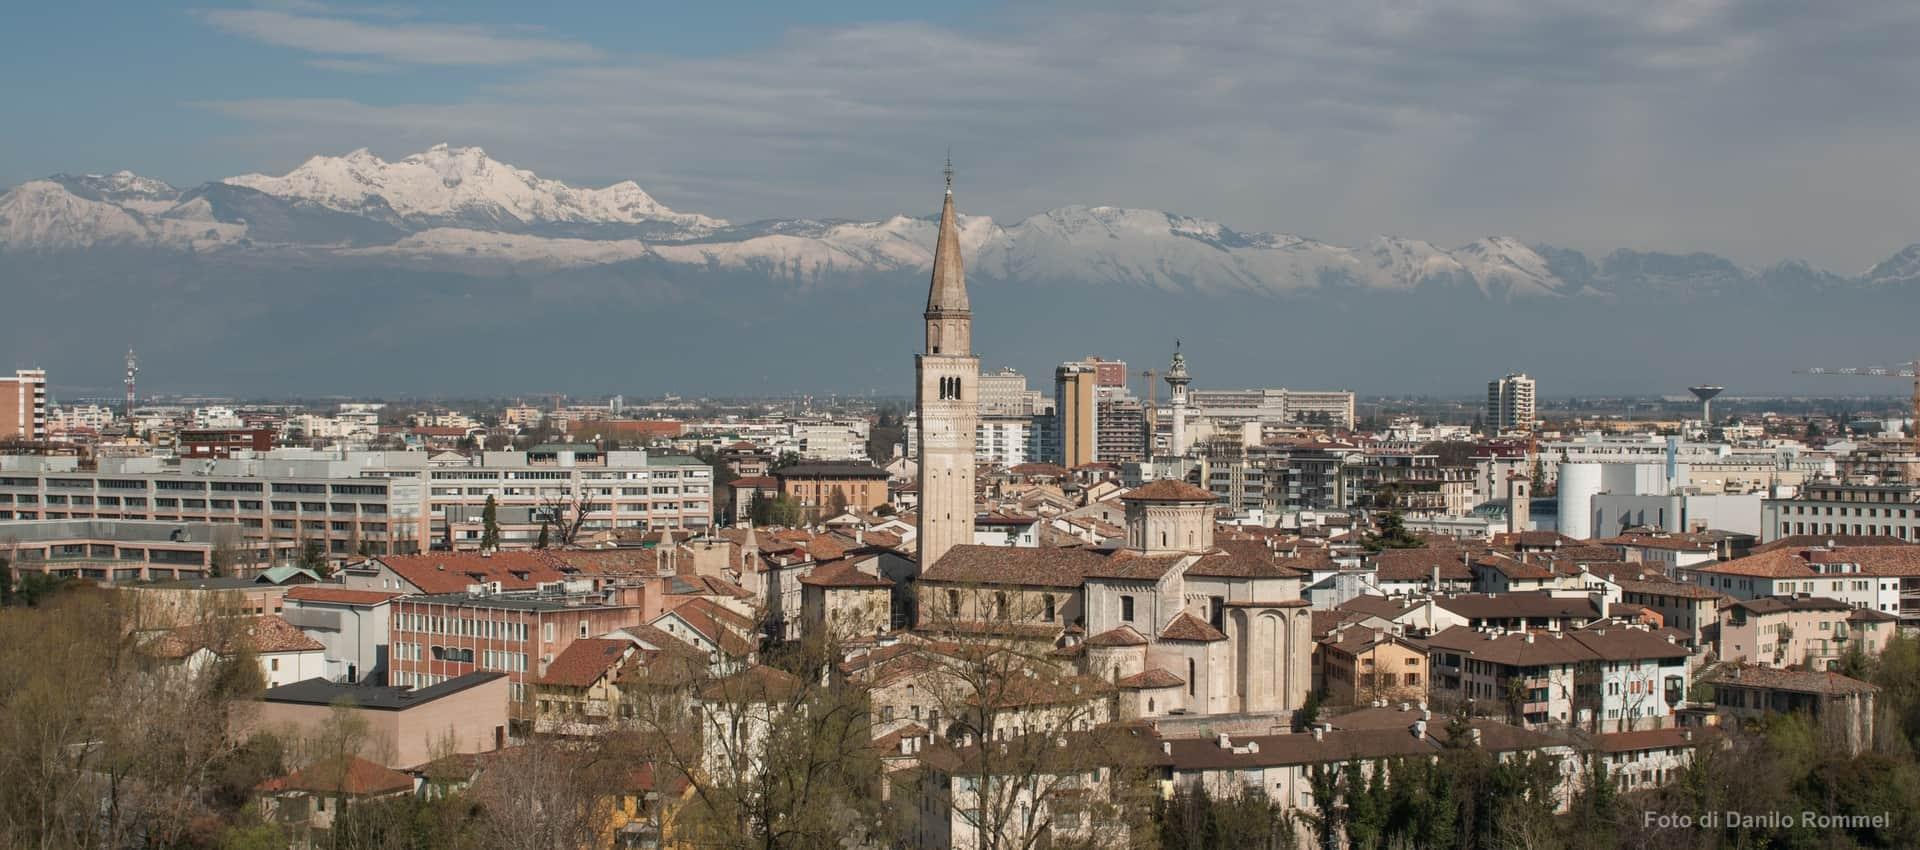 Pordenone – the ancient Portus Naonis